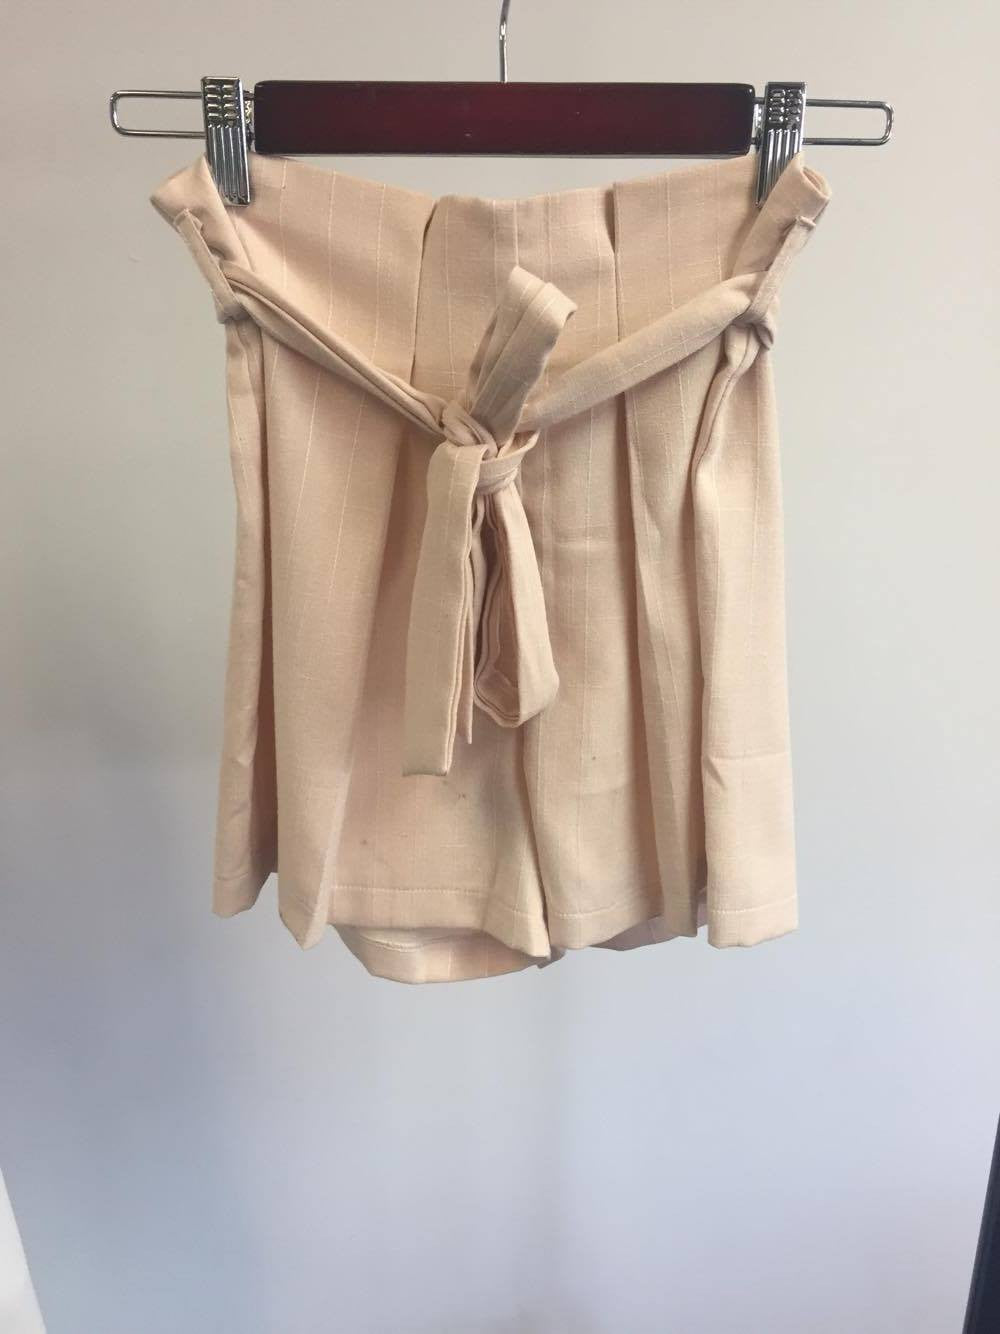 Dejavu Shorts in Dusty Pink